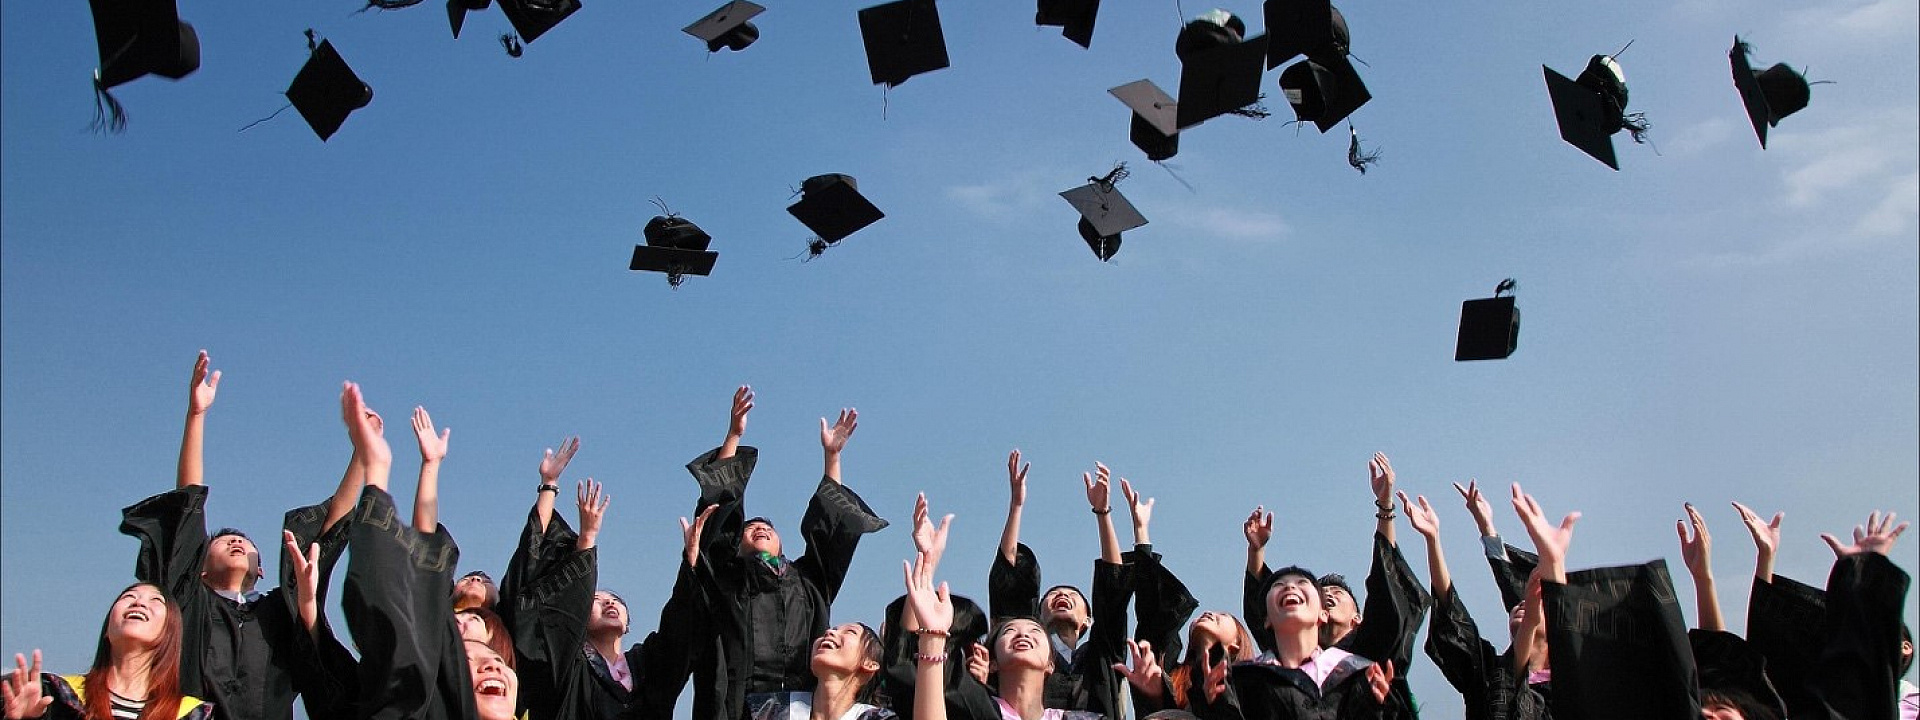 Students throwing their graduate caps into the air on a summer day